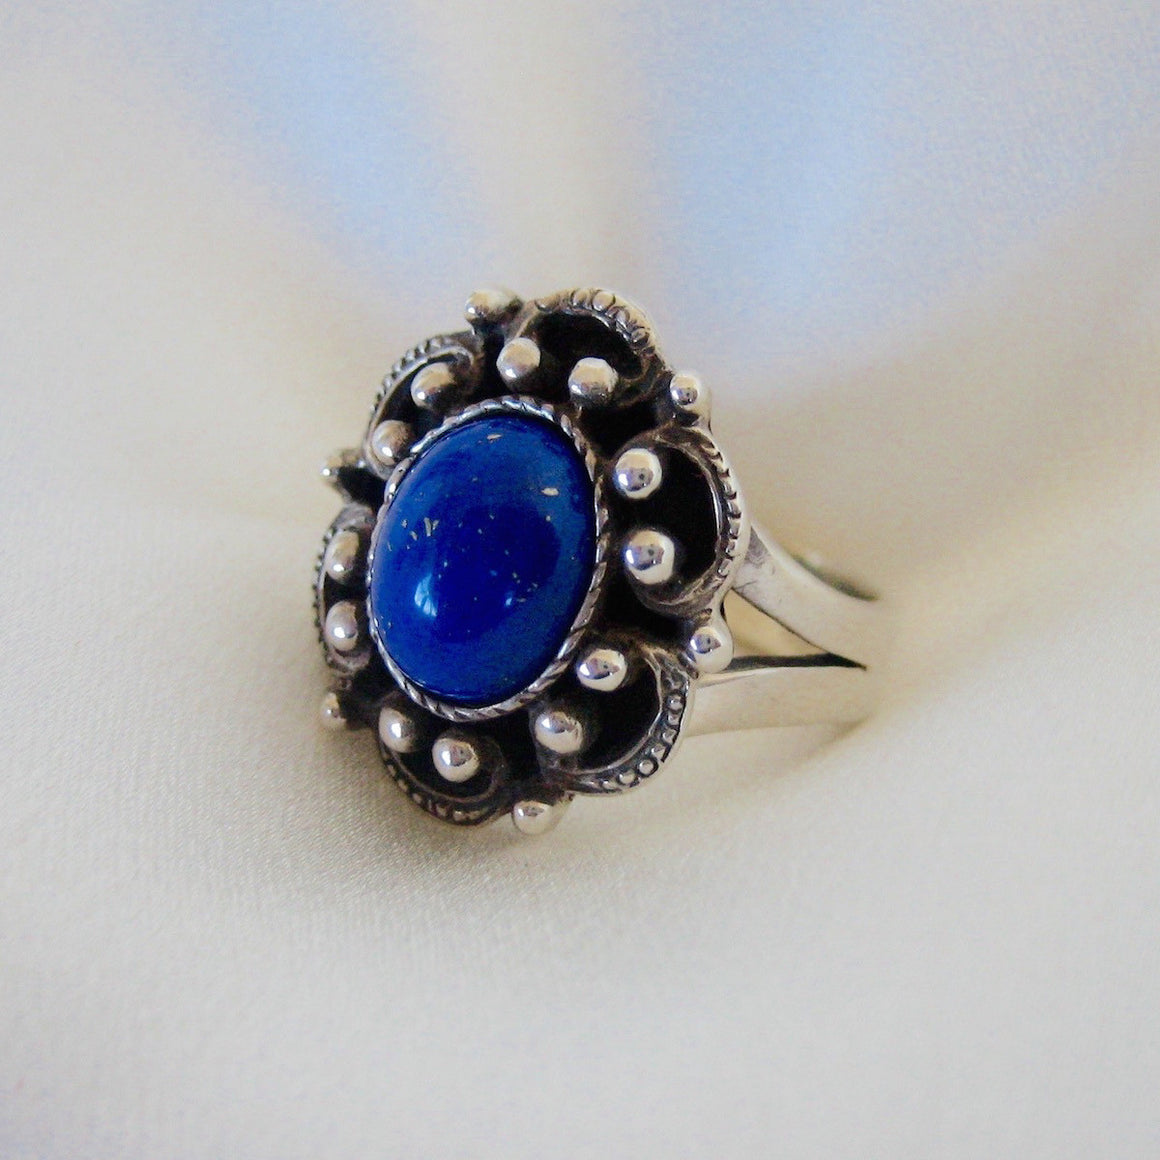 Rings - Vintage Style Silver Ring